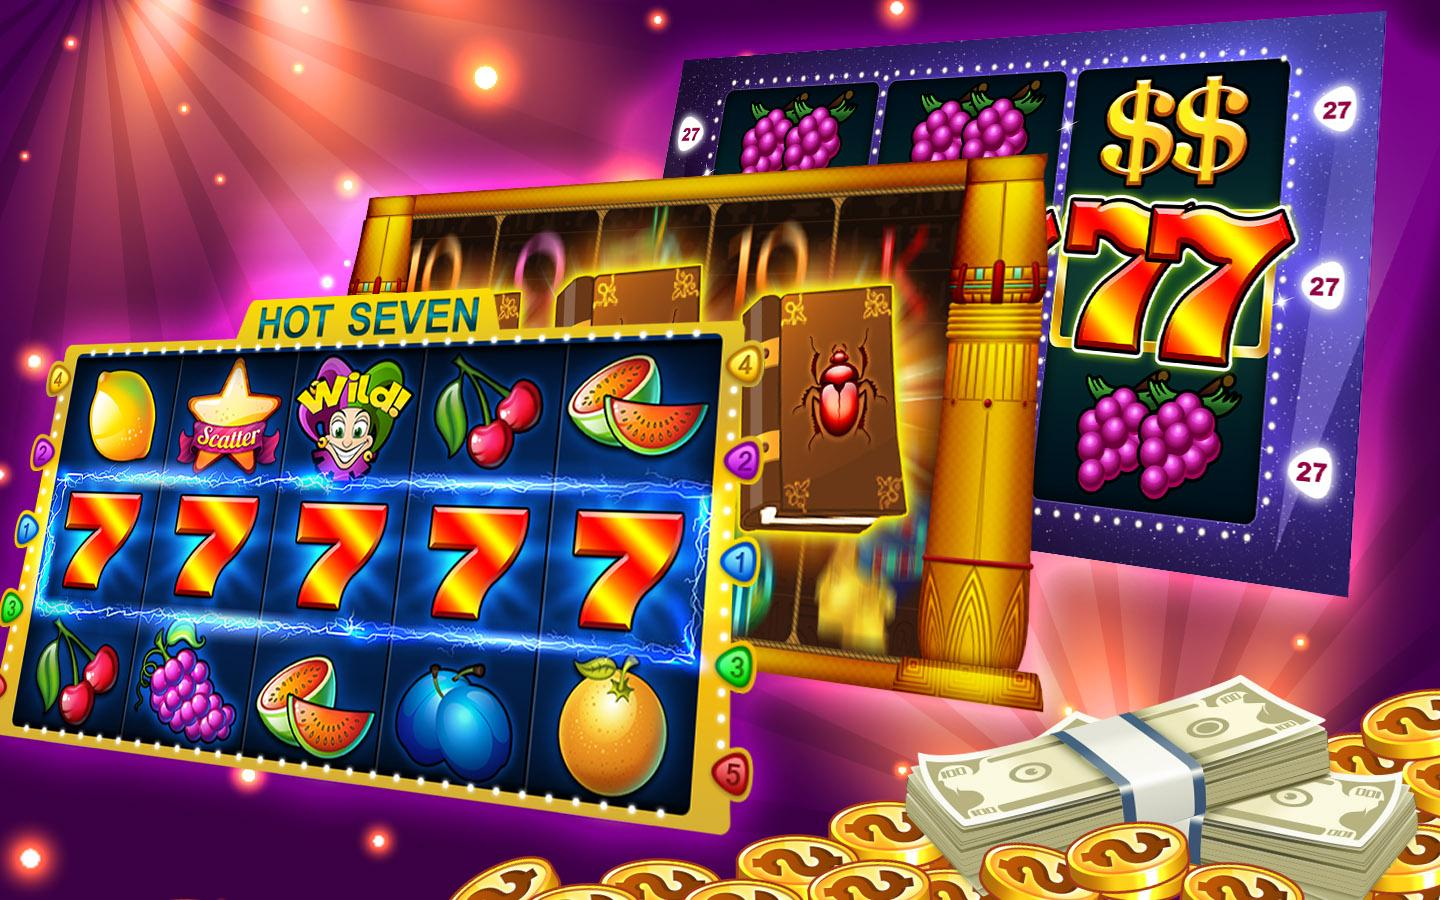 KTV Slot Machine - Win Big Playing Online Casino Games